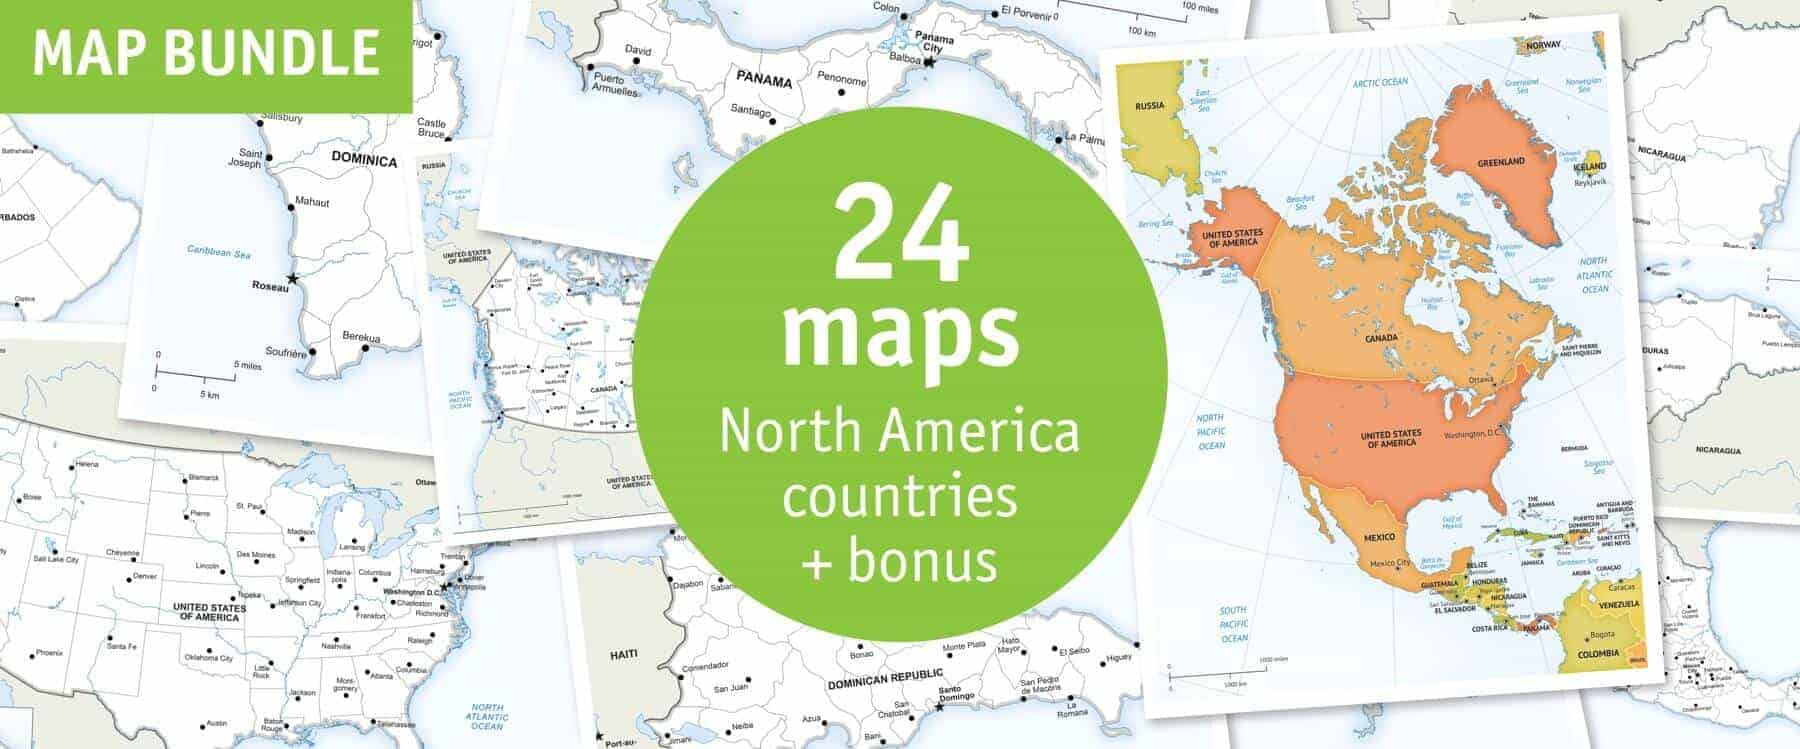 North America countries map bundle - defined map style